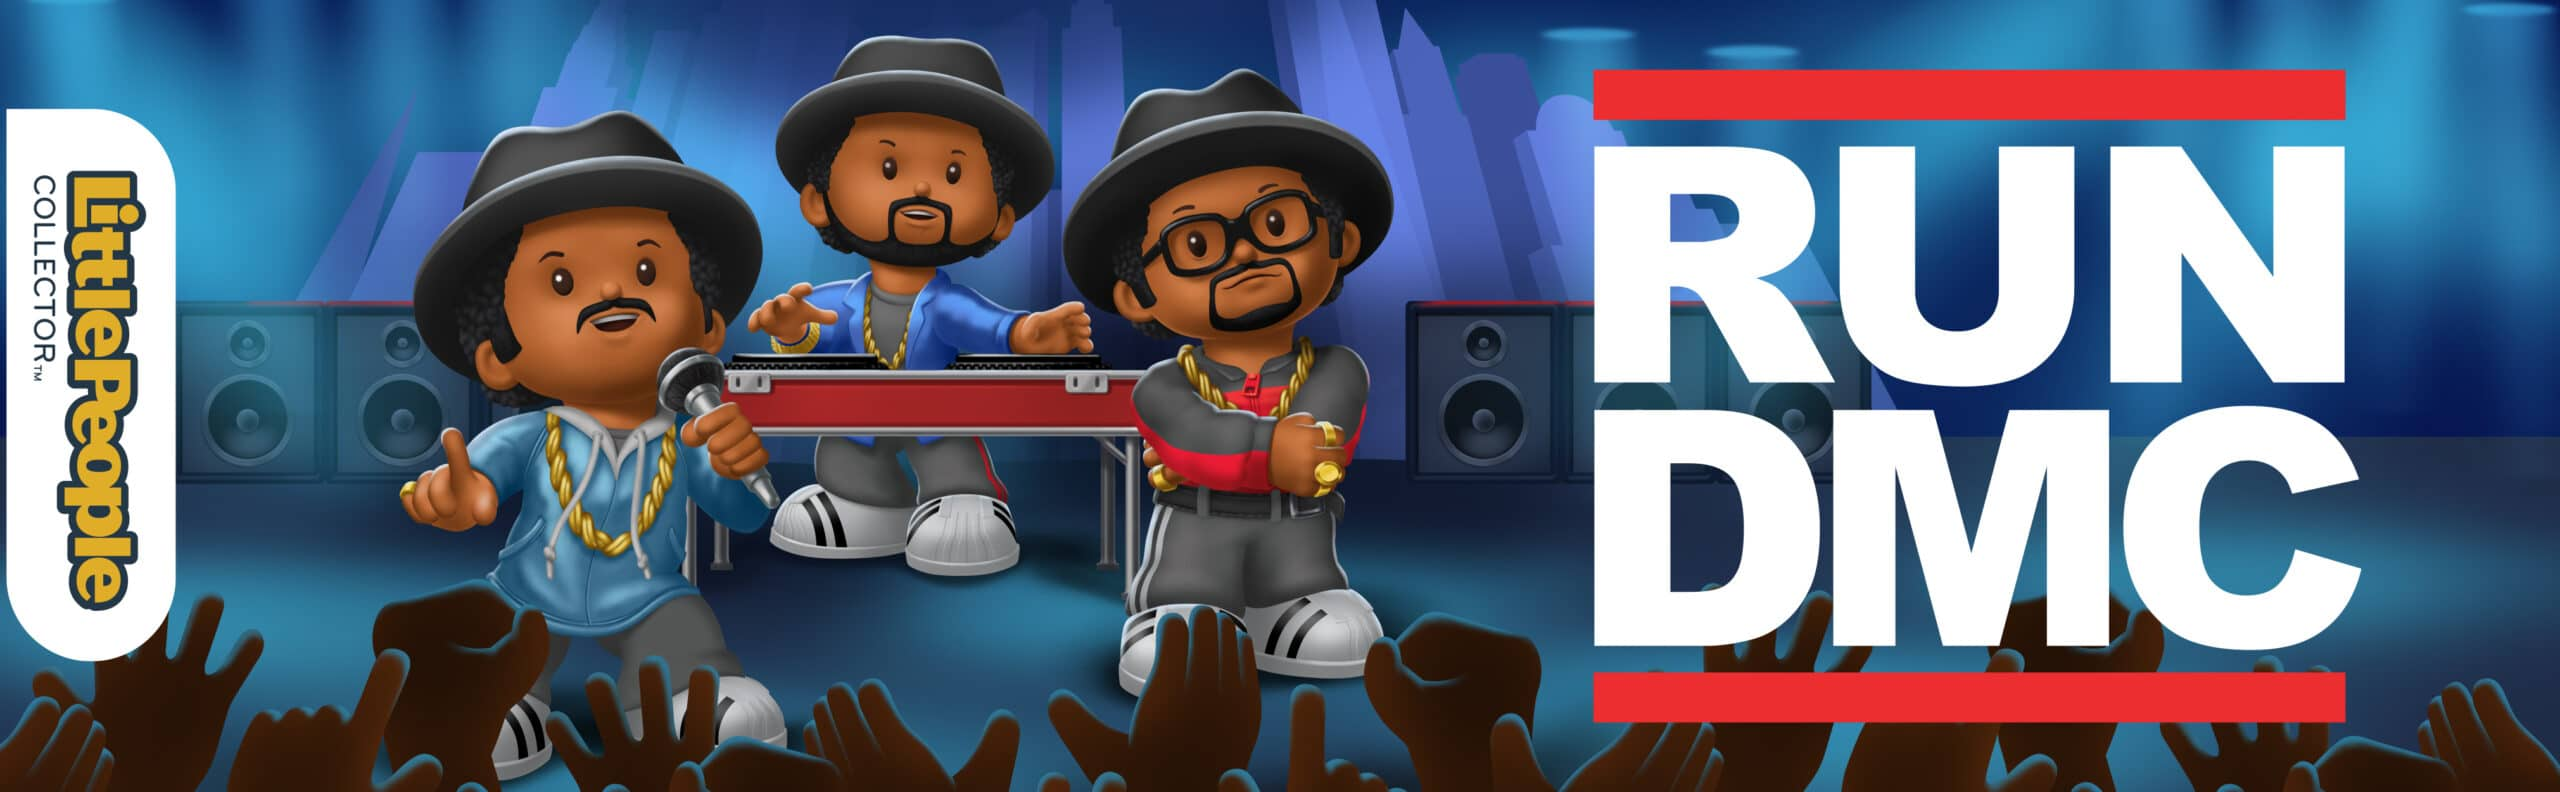 Run DMC gets a Little People figure set from Fisher-Price 14